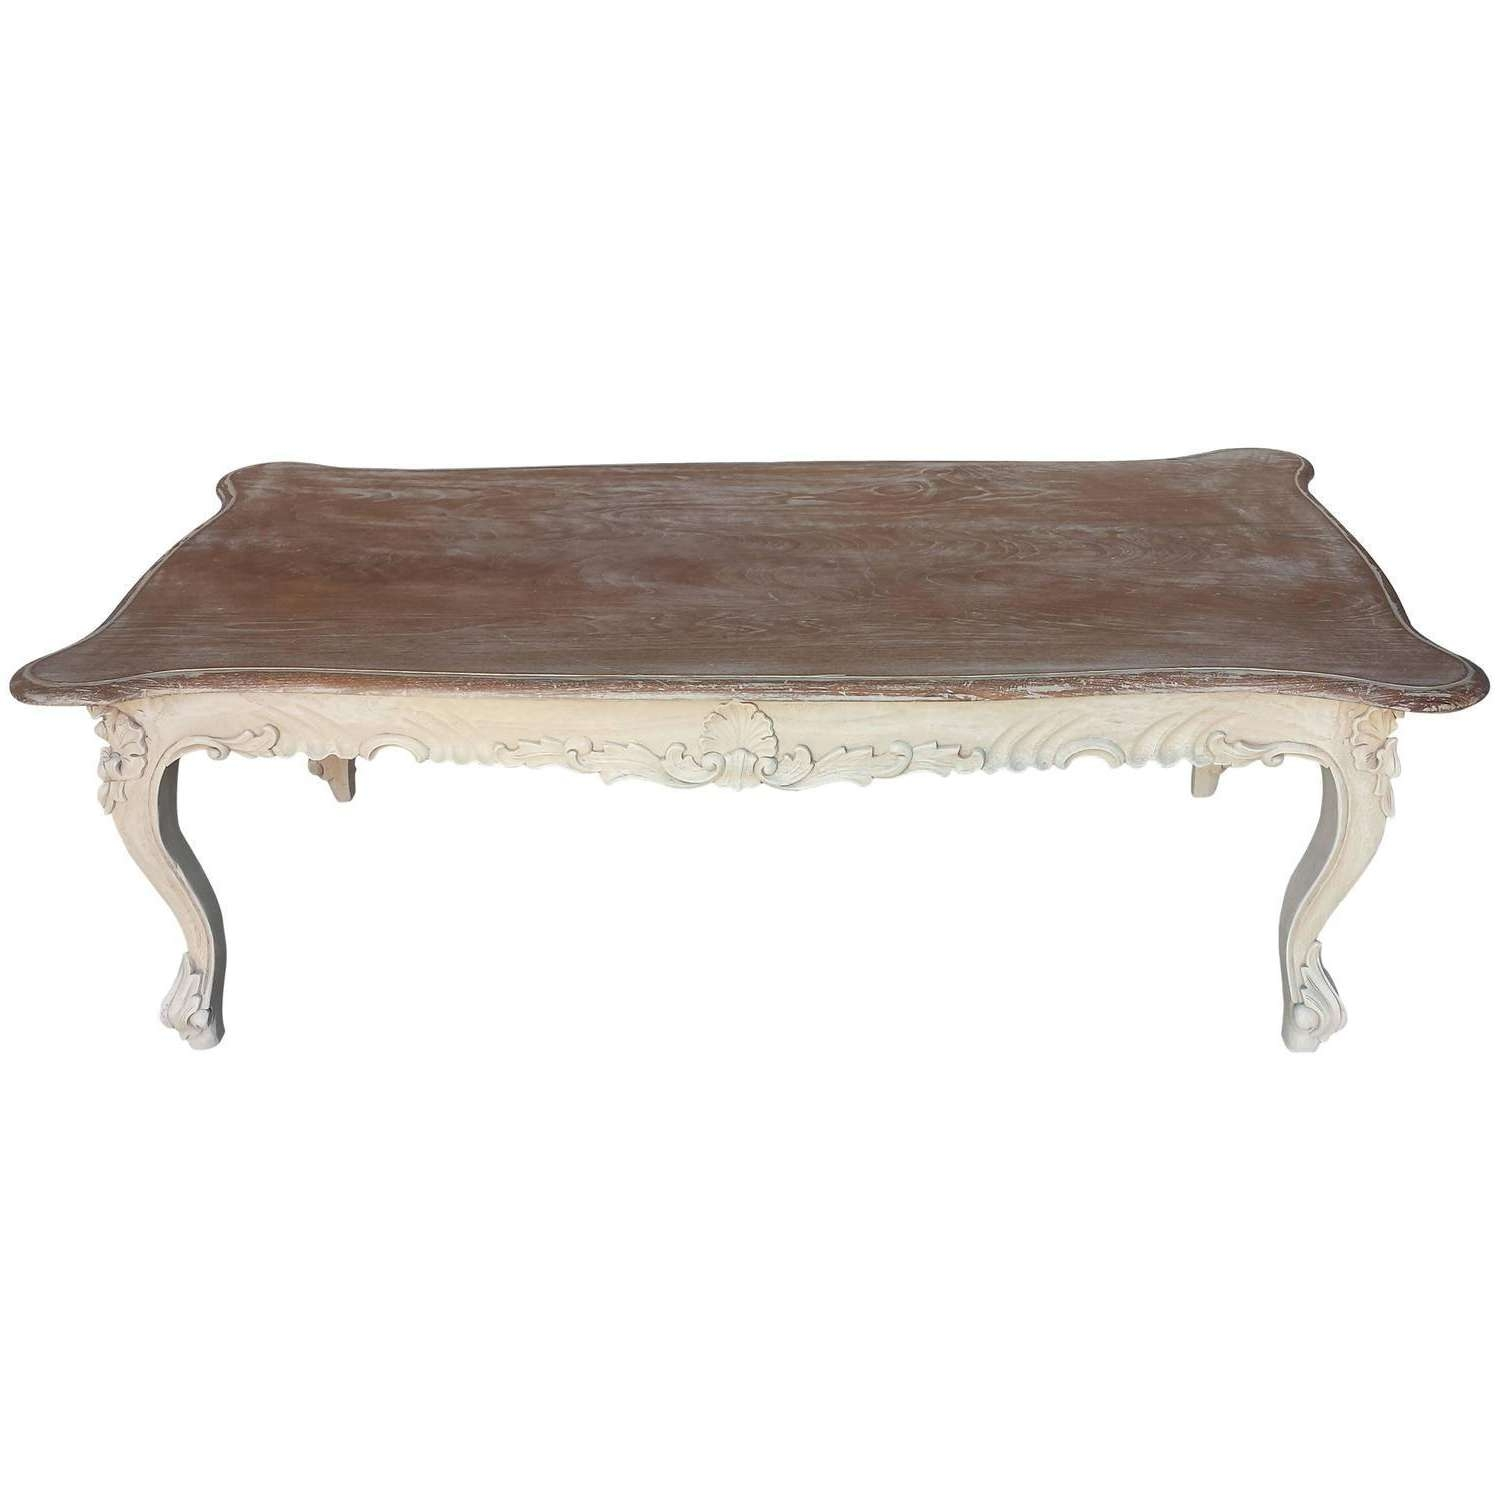 Coffee Tables : Image Of French Country Style Carved Coffee Table Throughout Famous Country Coffee Tables (View 13 of 20)